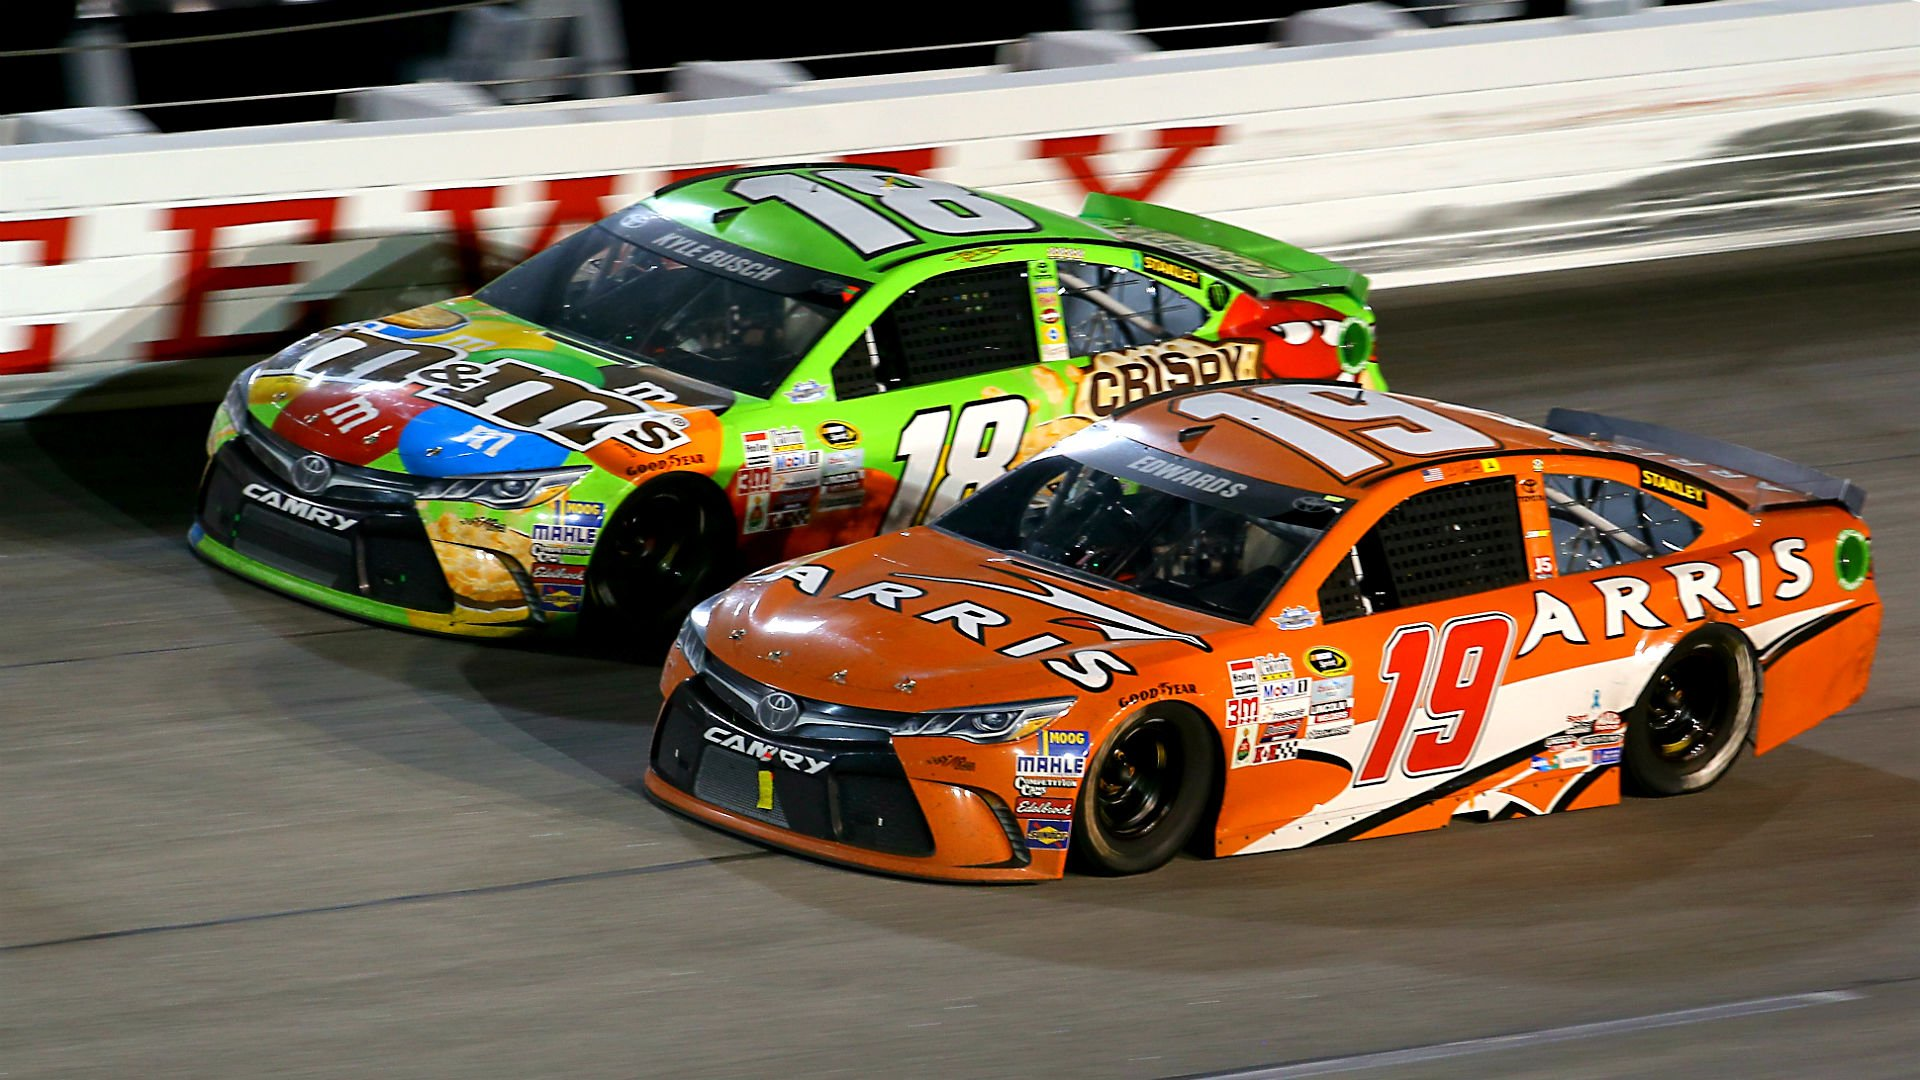 Nascar Race Racing Wallpaper 1920x1080 880365 Wallpaperup